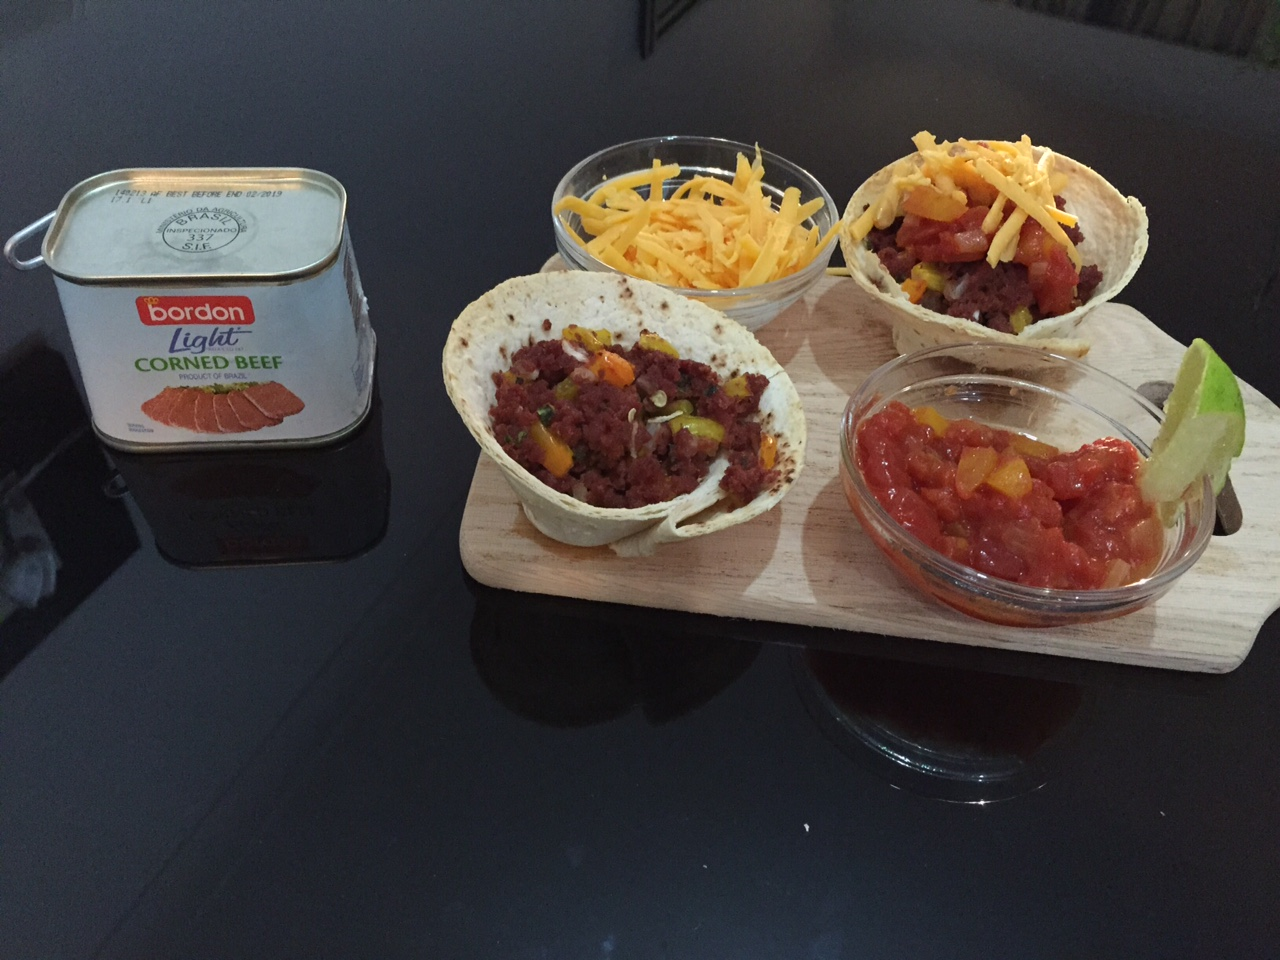 Rebecca Mercieca BORDON Recipe: Mexican crispy tortilla wraps filled with Bordon corned beef and spicy Mexican salsa